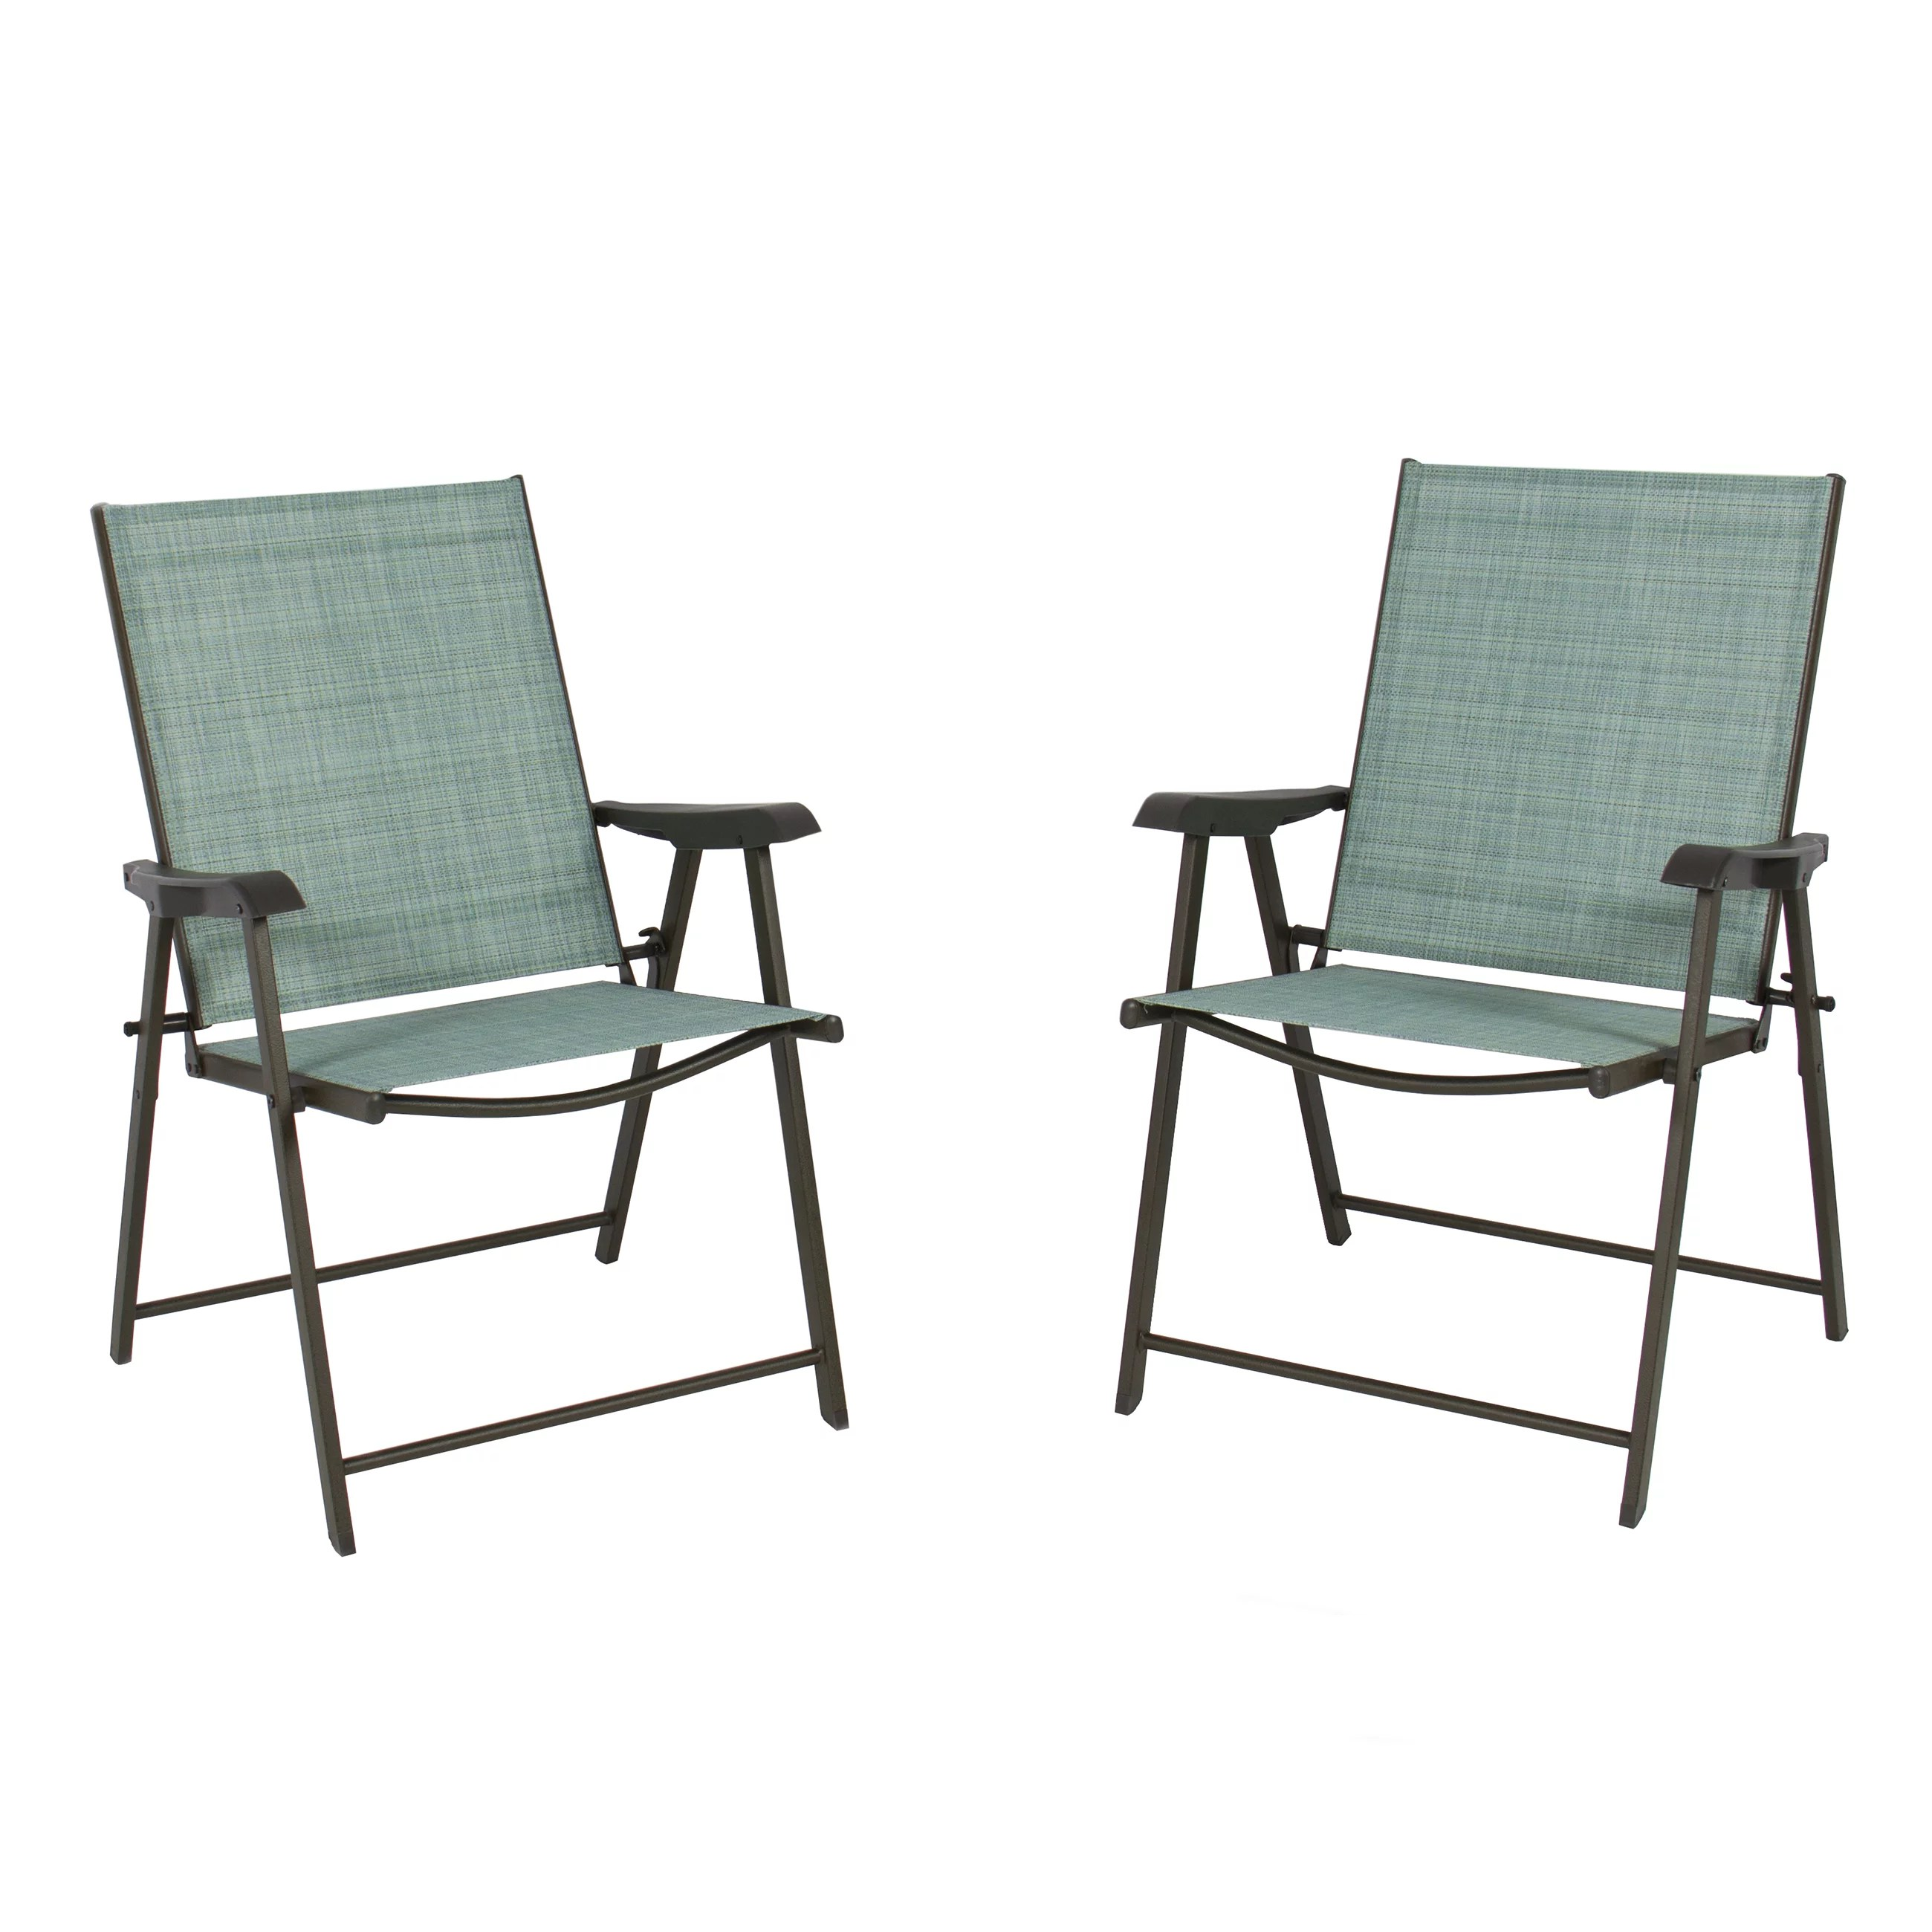 Foldable Patio Chairs Best Choice Products Set Of 2 Outdoor Folding Bistro Patio Chairs W Space Saving Design Green